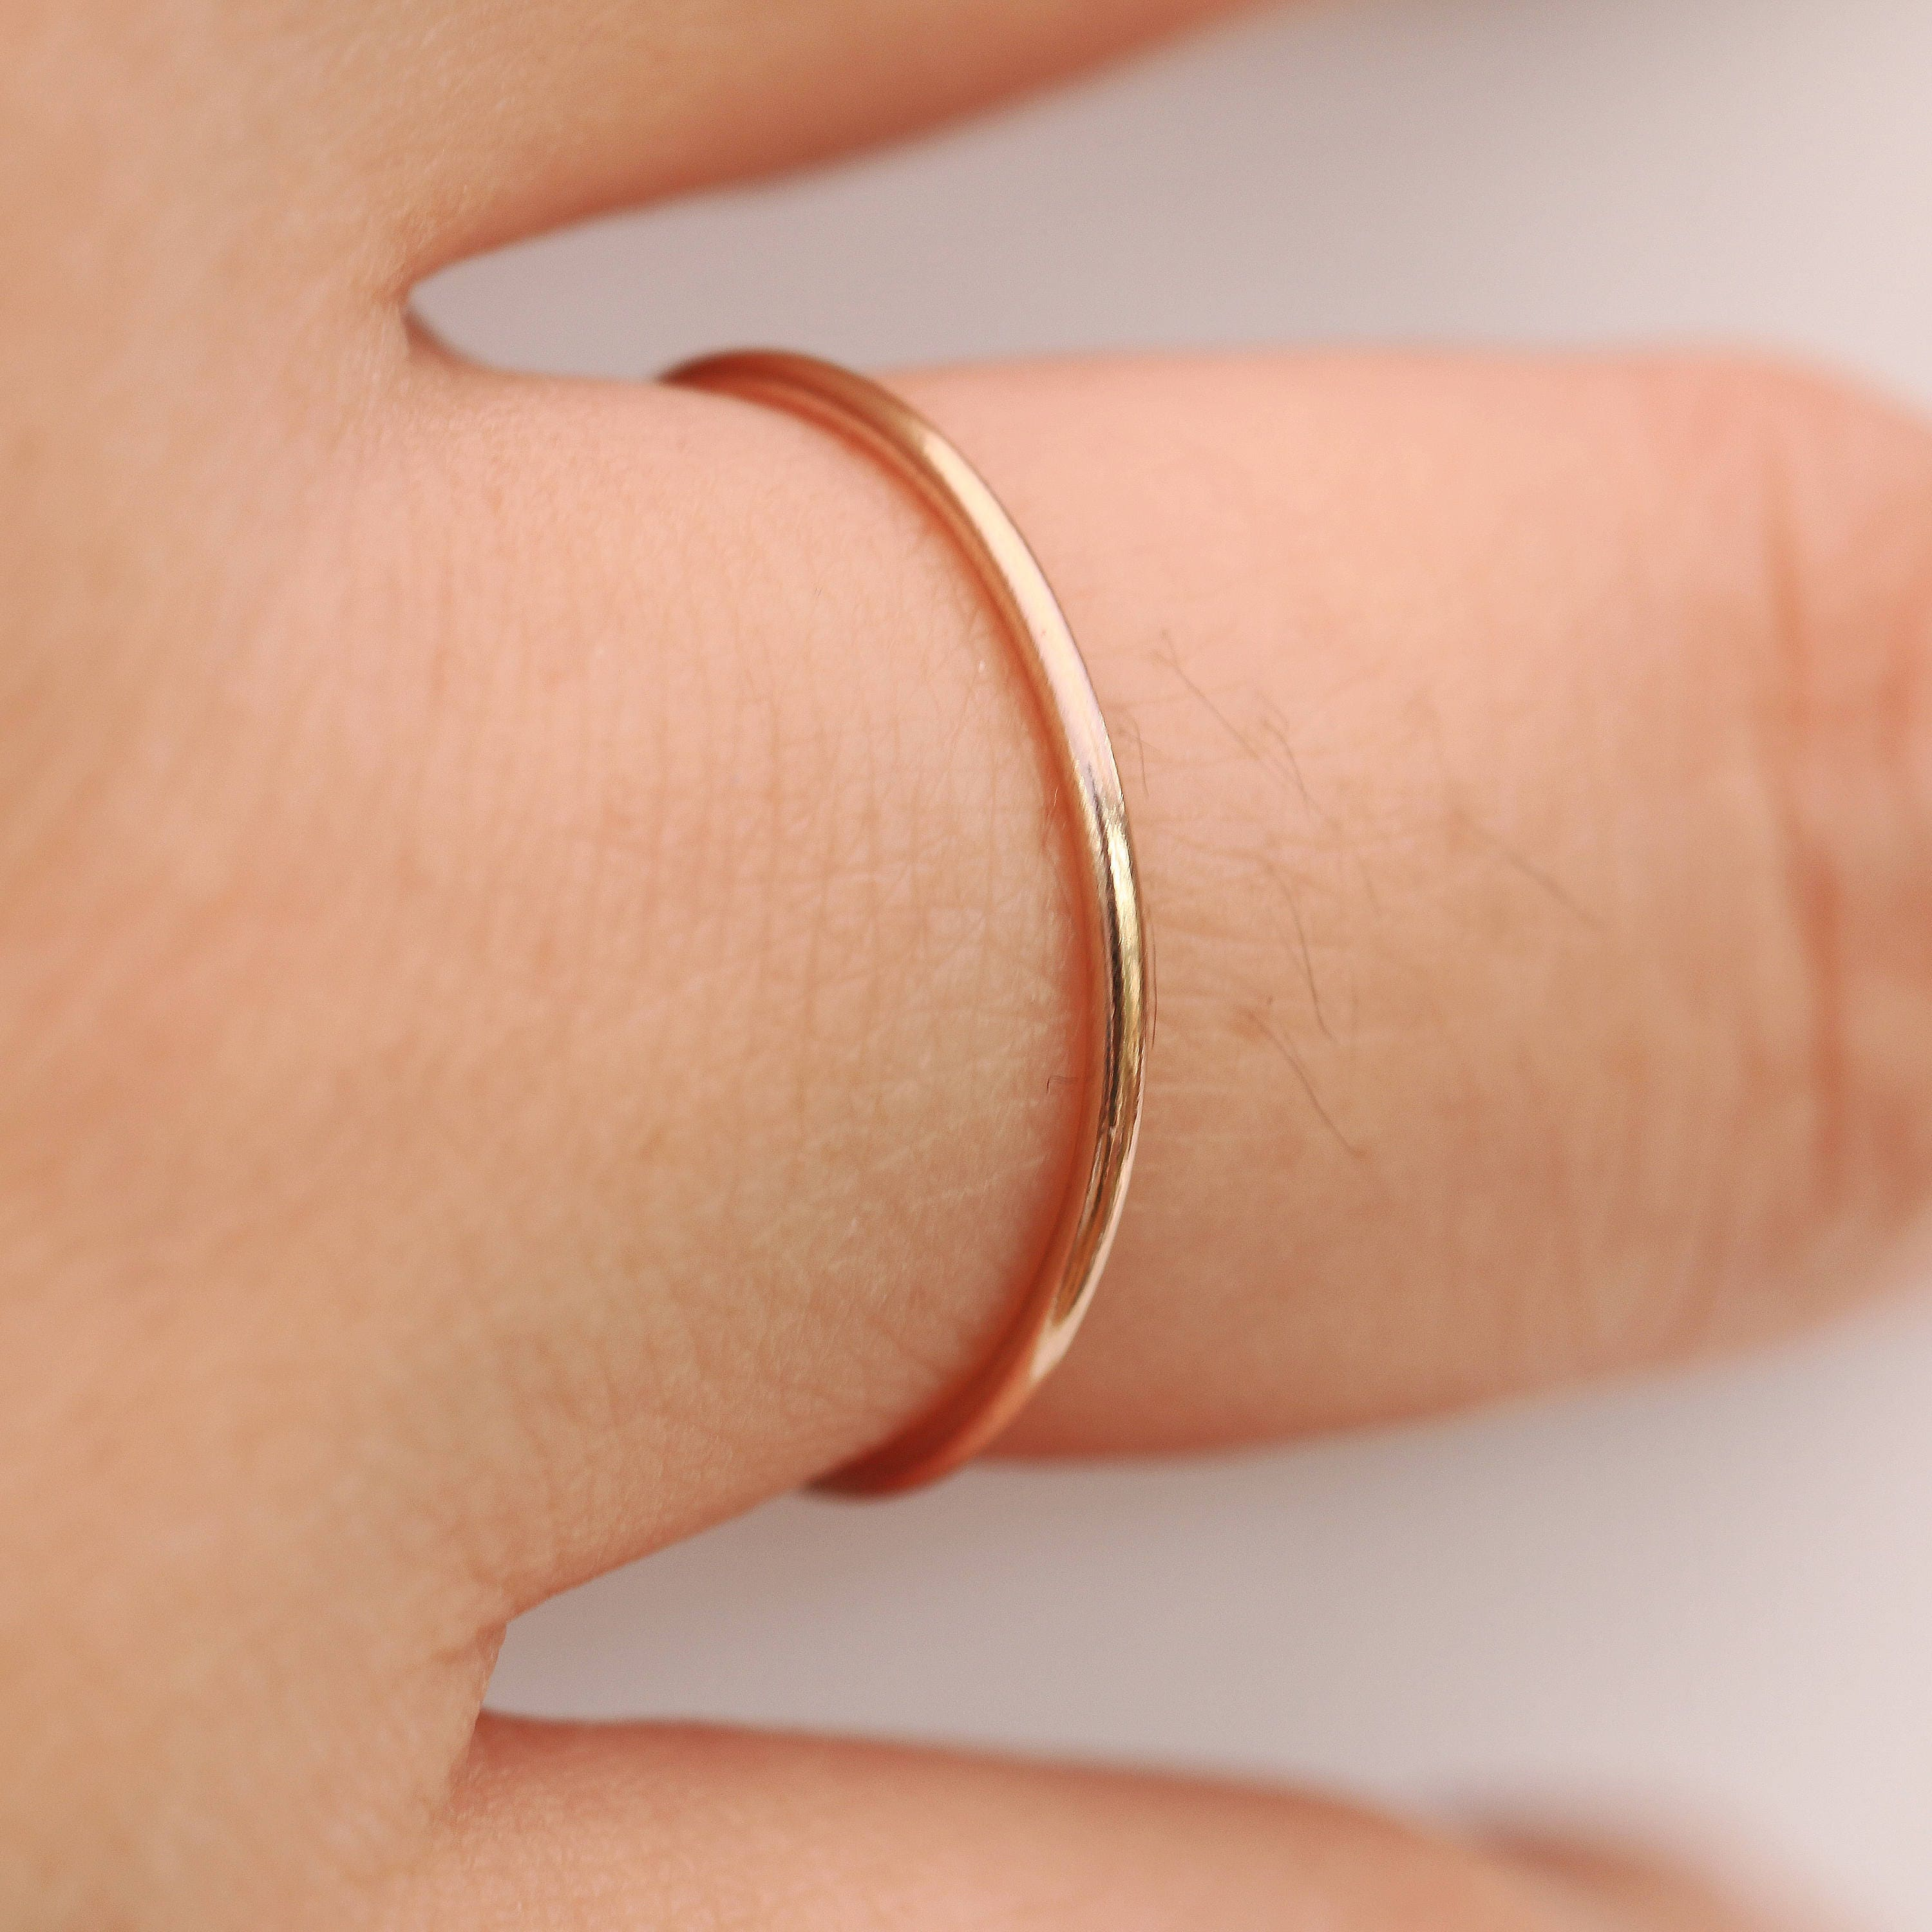 rings regarding engagement ring plain gold wedding thick band weddingbee thin bands